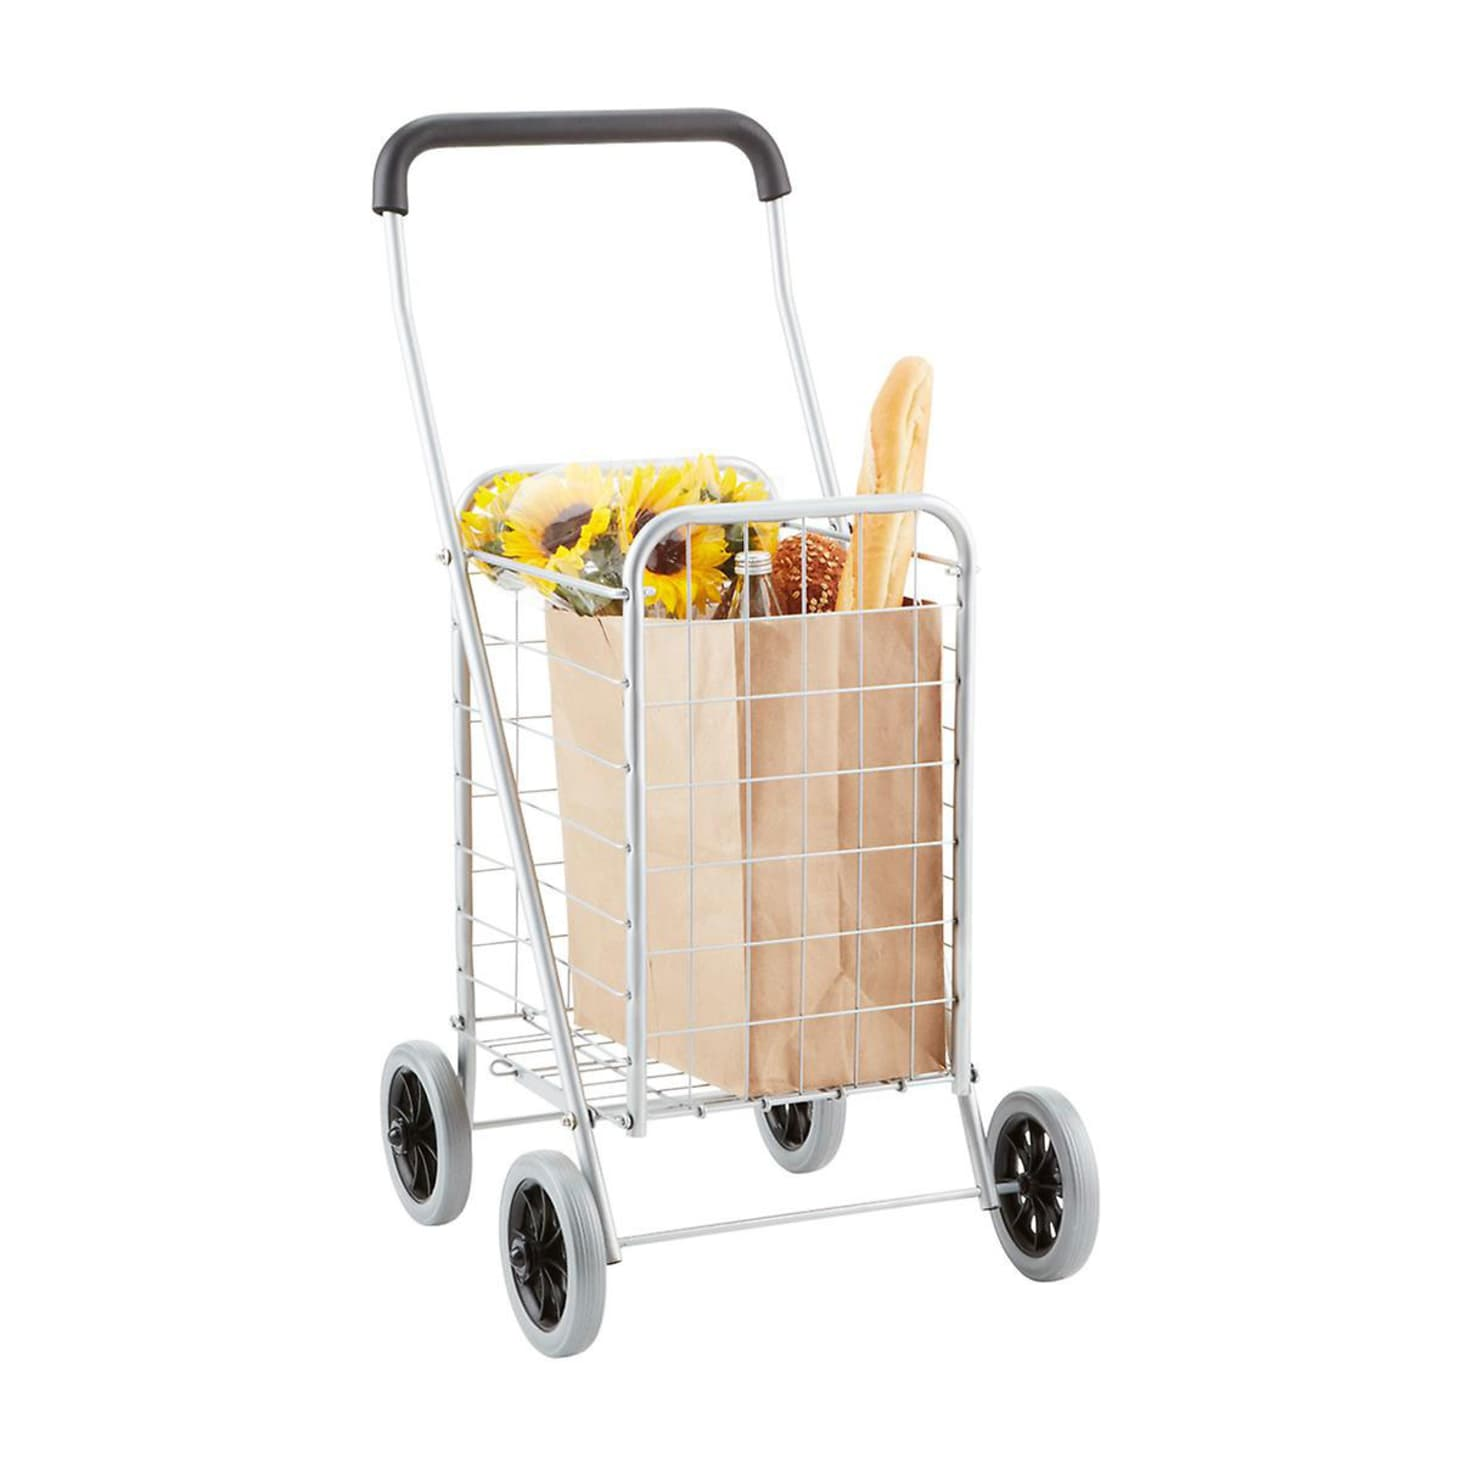 Best Shopping Carts for Groceries | Kitchn